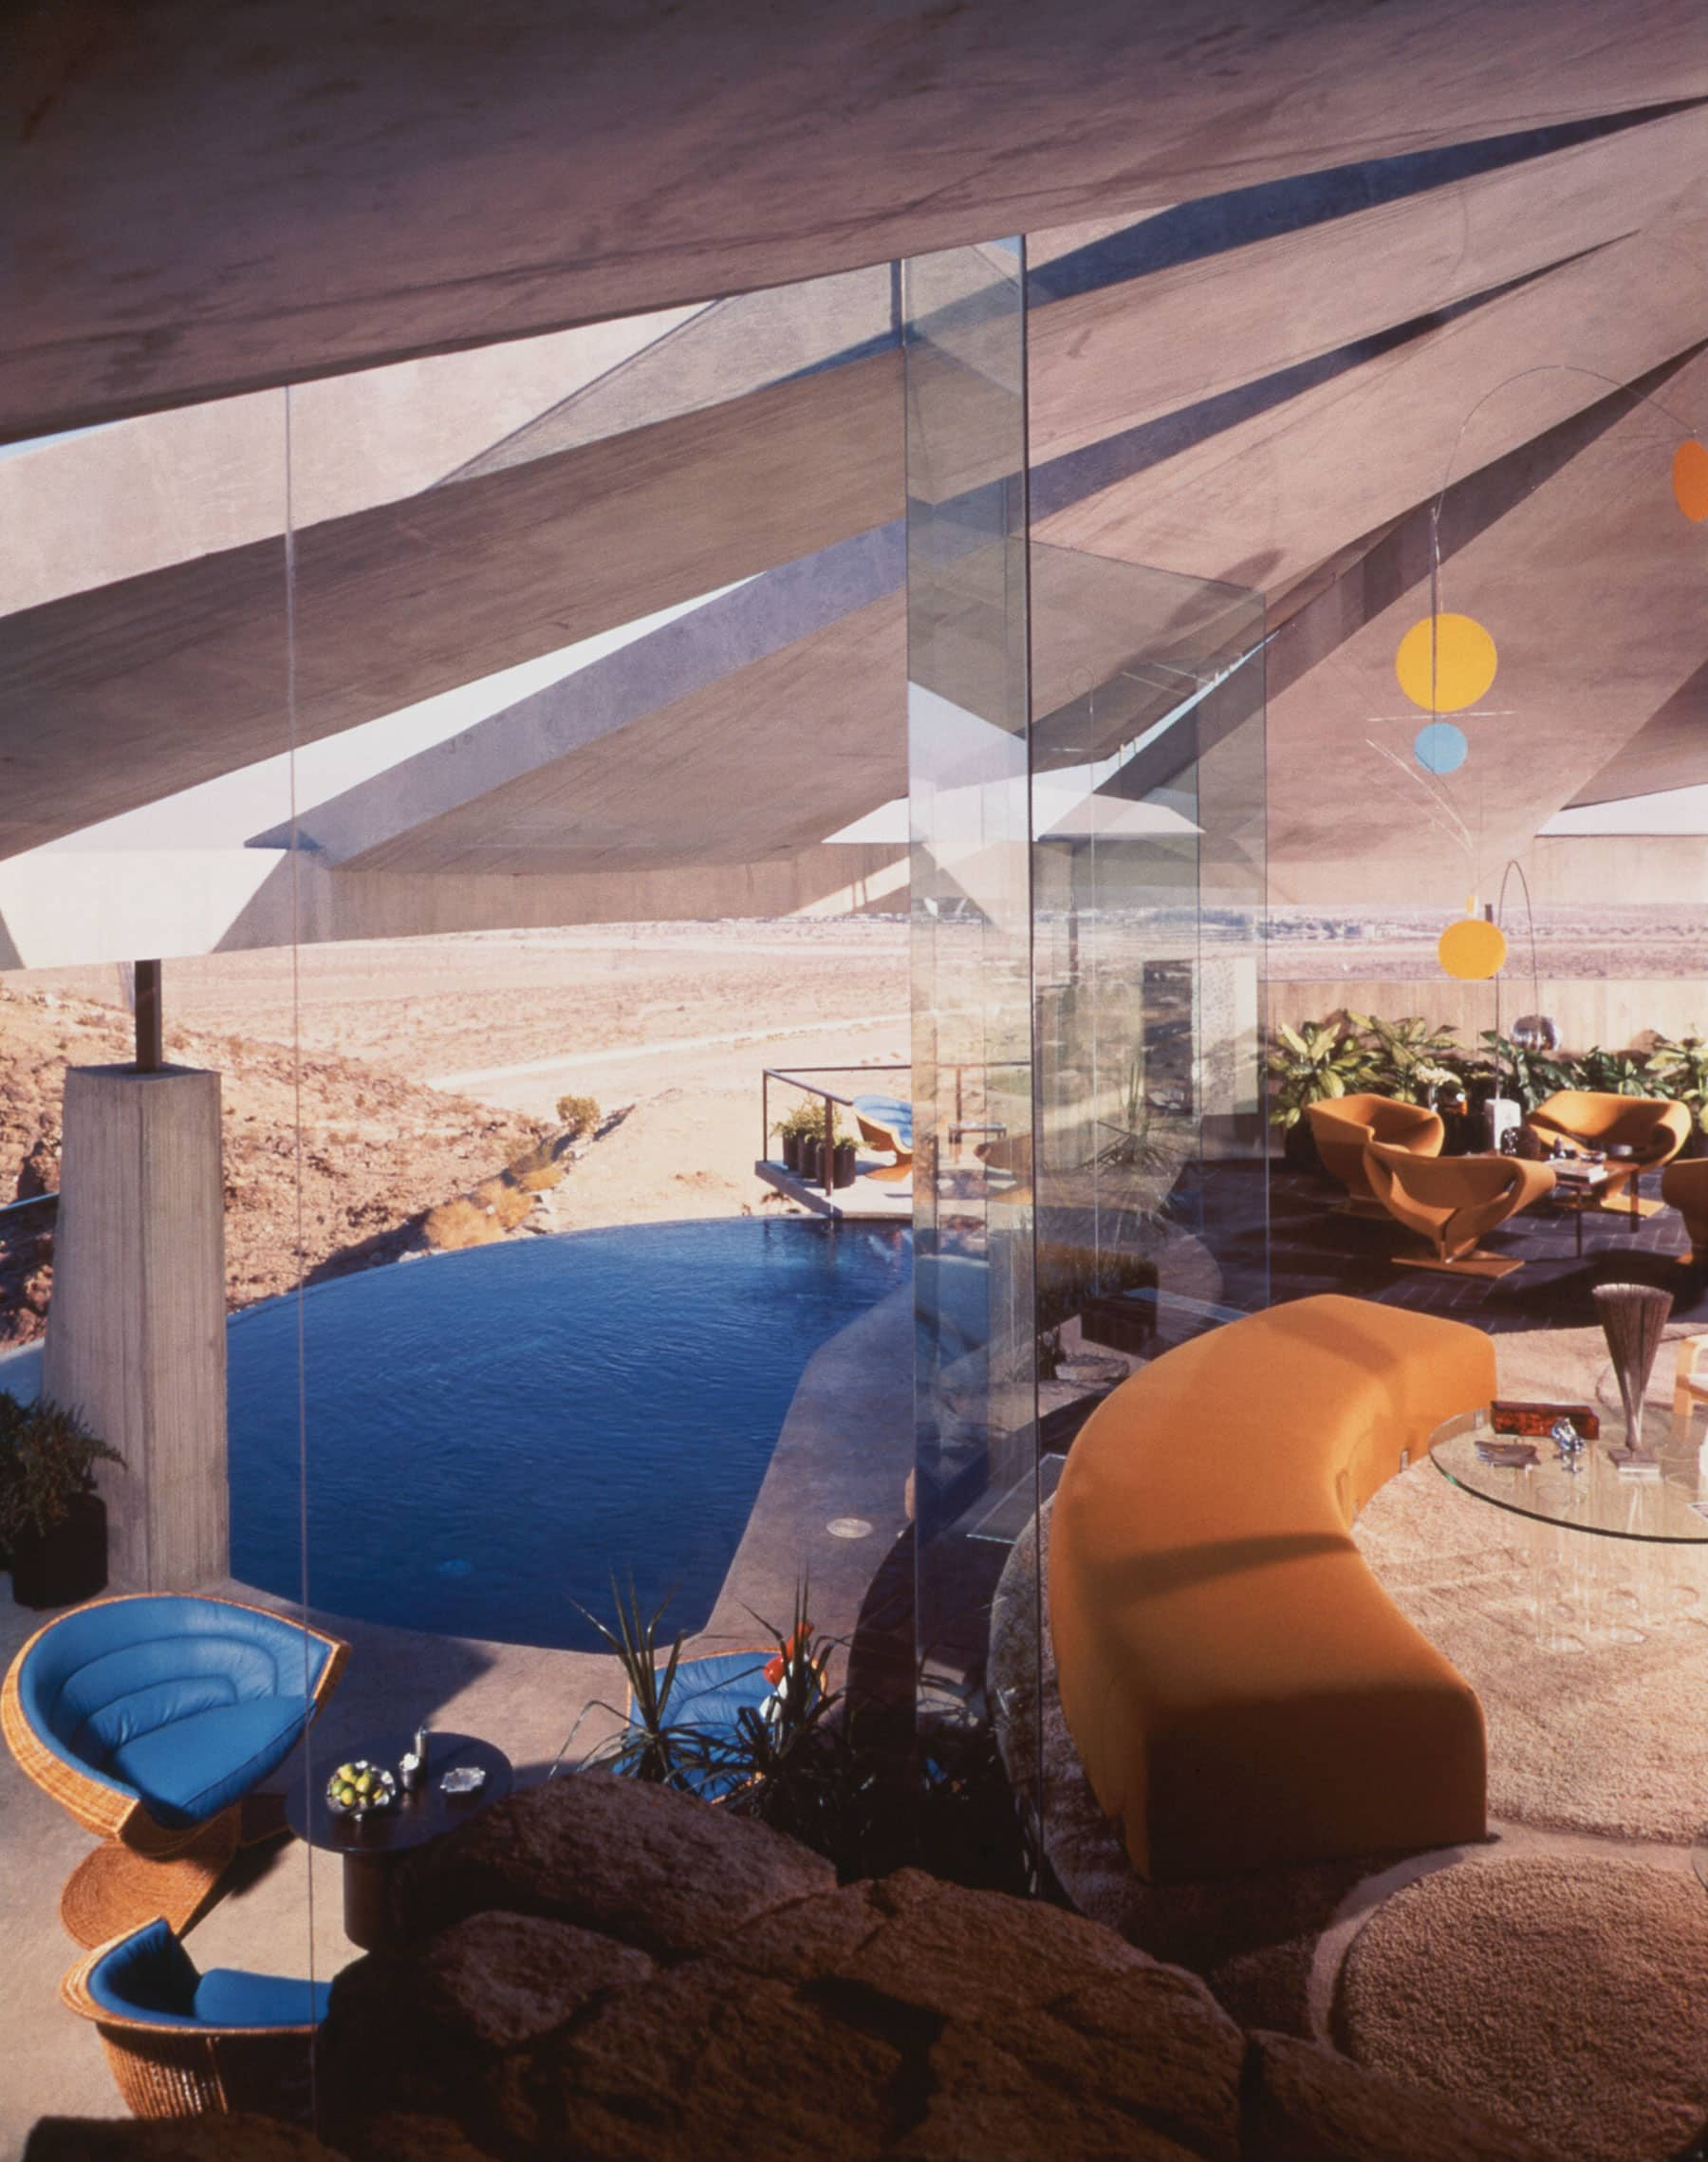 Desert Modern Designer Arthur Elrod Finally Gets His Day In The Sun 1stdibs Introspective